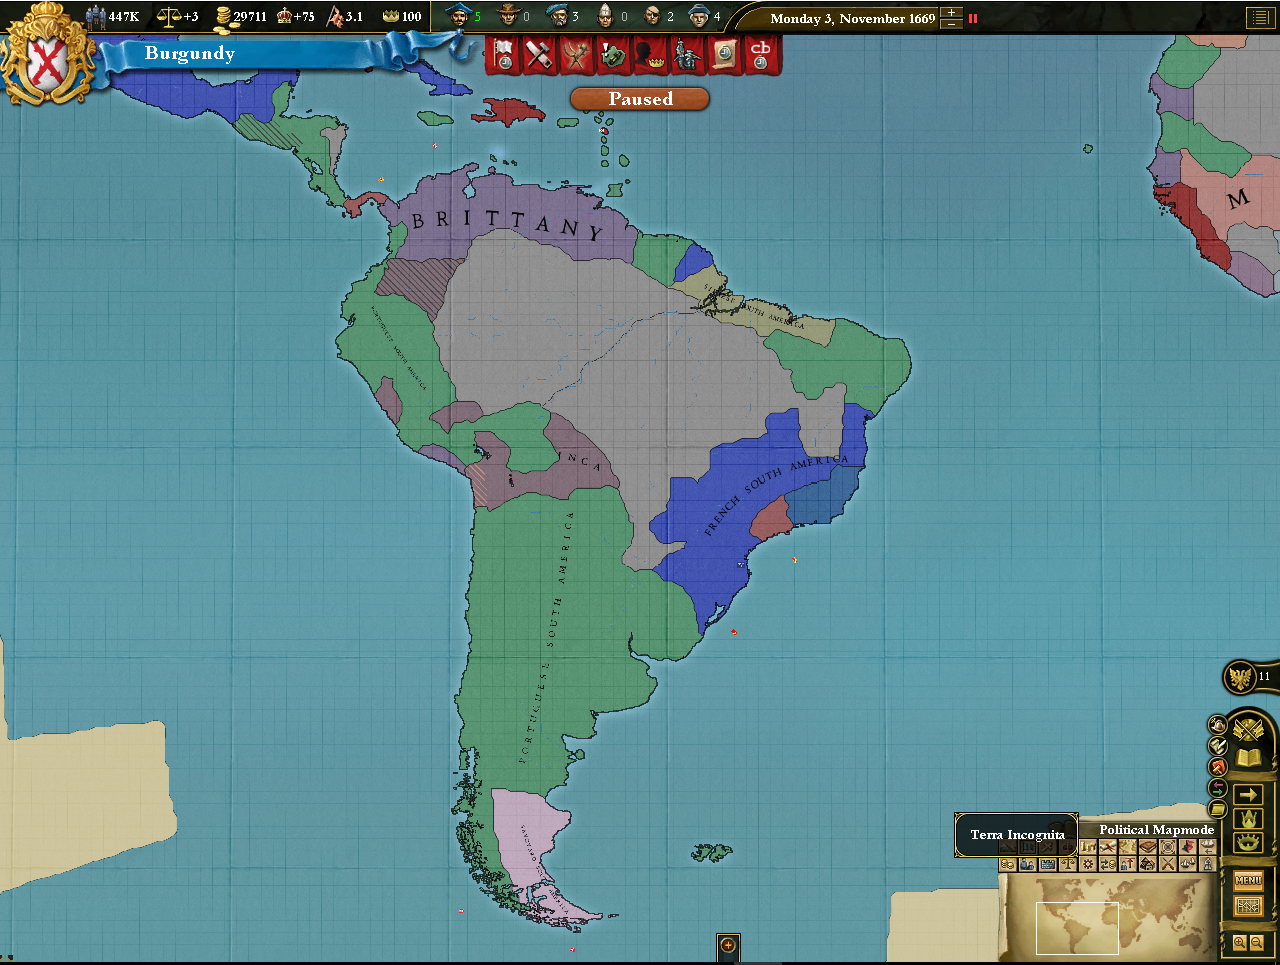 South_America_1669.PNG